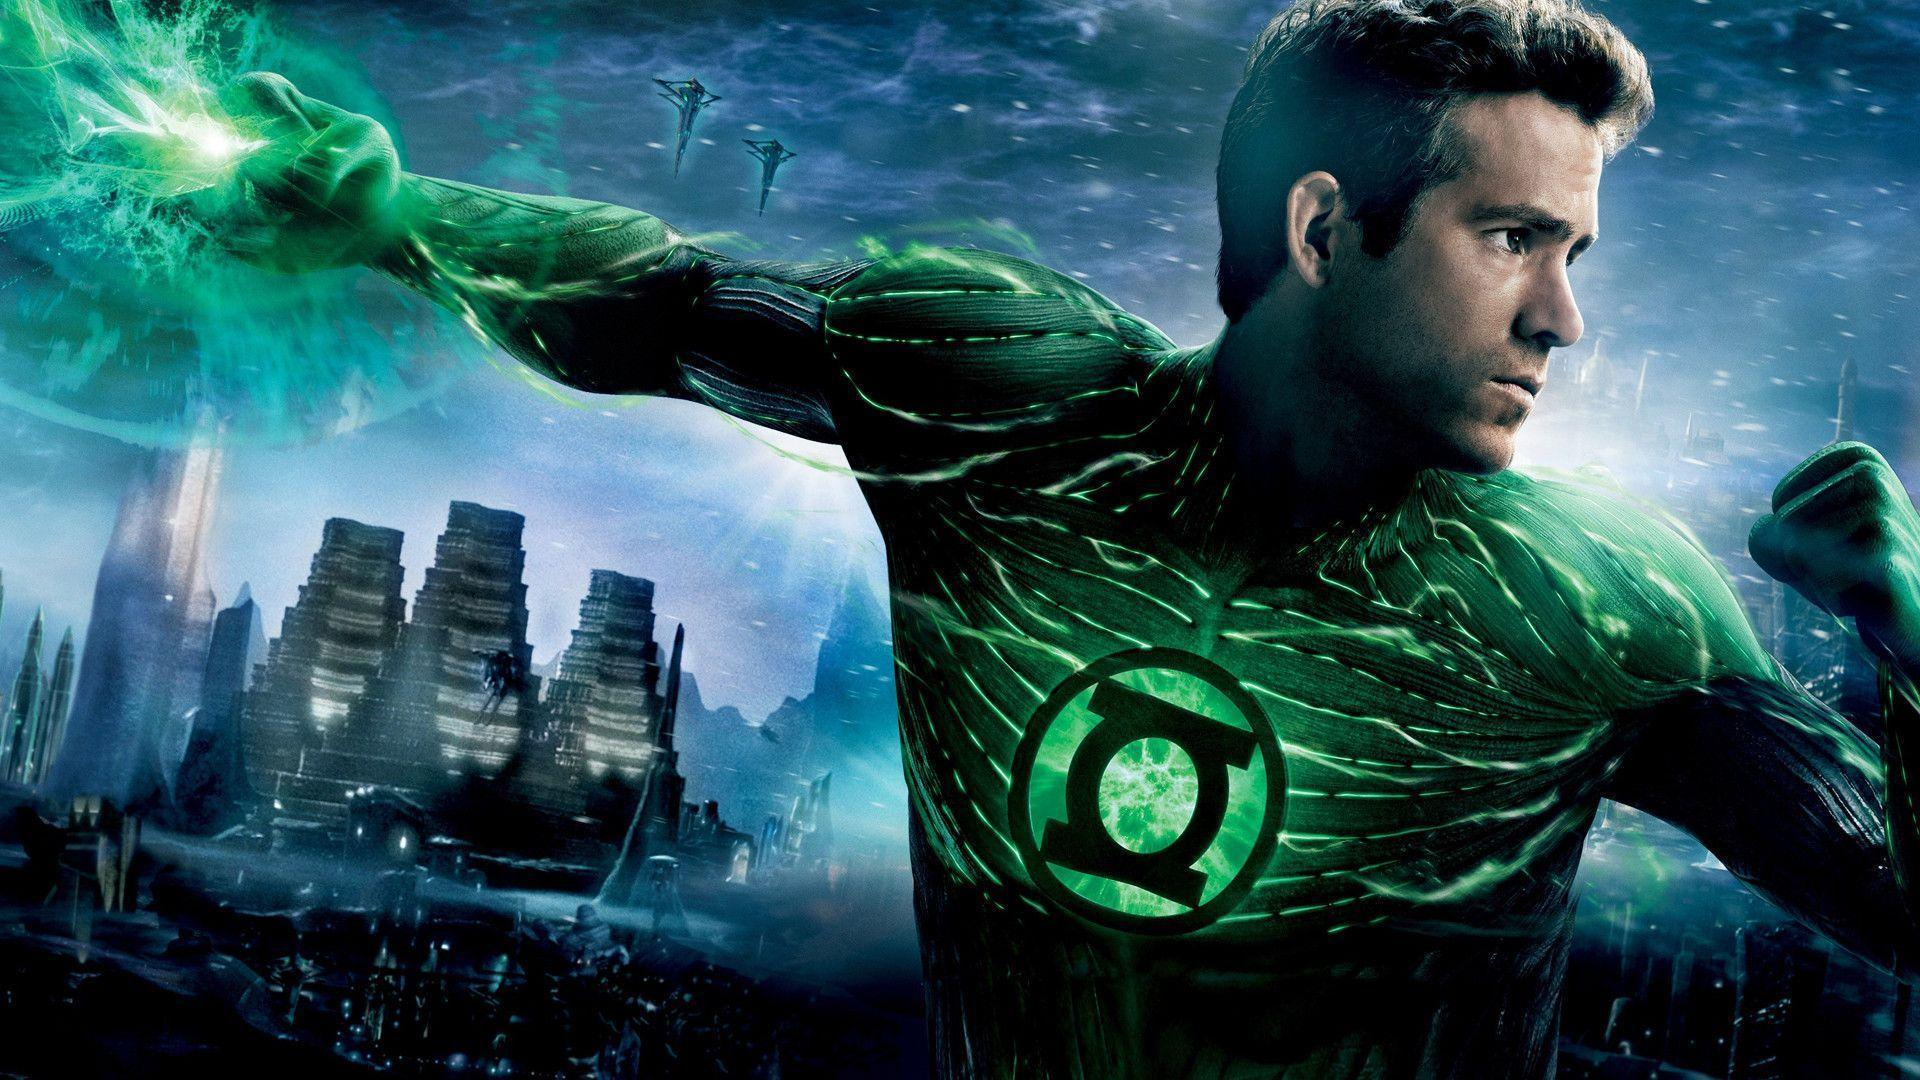 green lantern hal jordan dc comics super hero hd background wallpaper